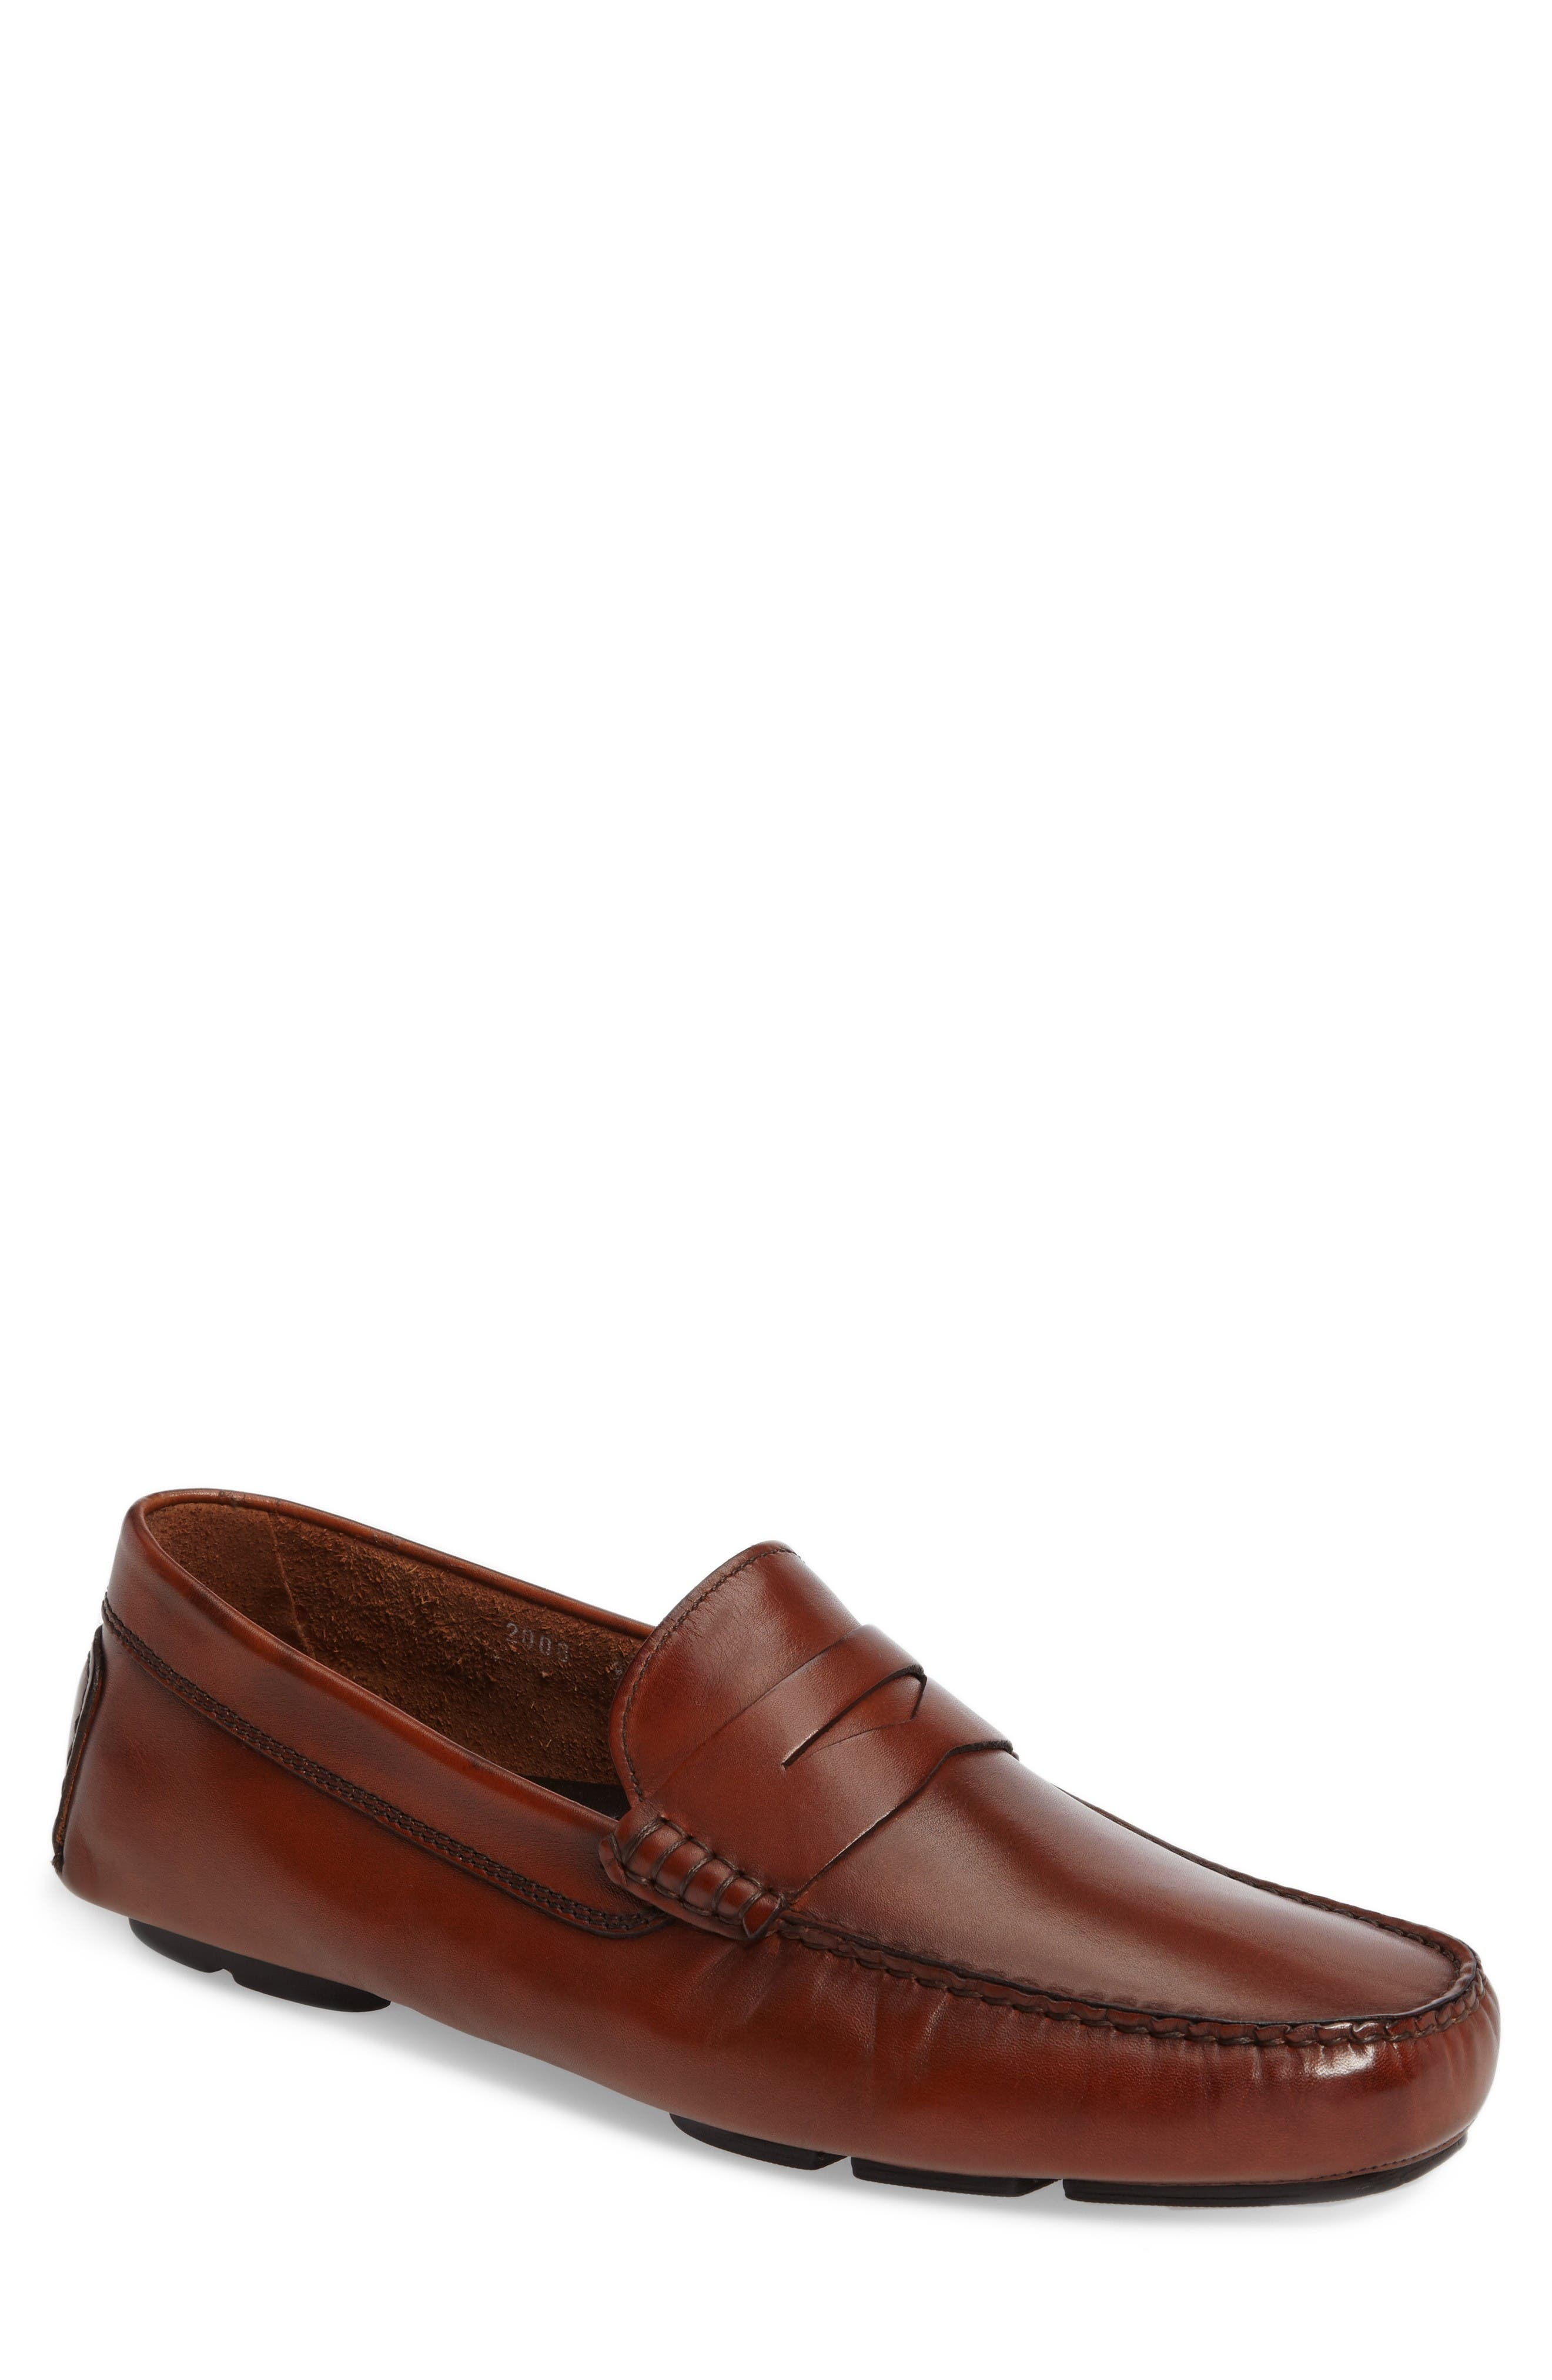 TO BOOT NEW YORK 'Harper' Driving Shoe